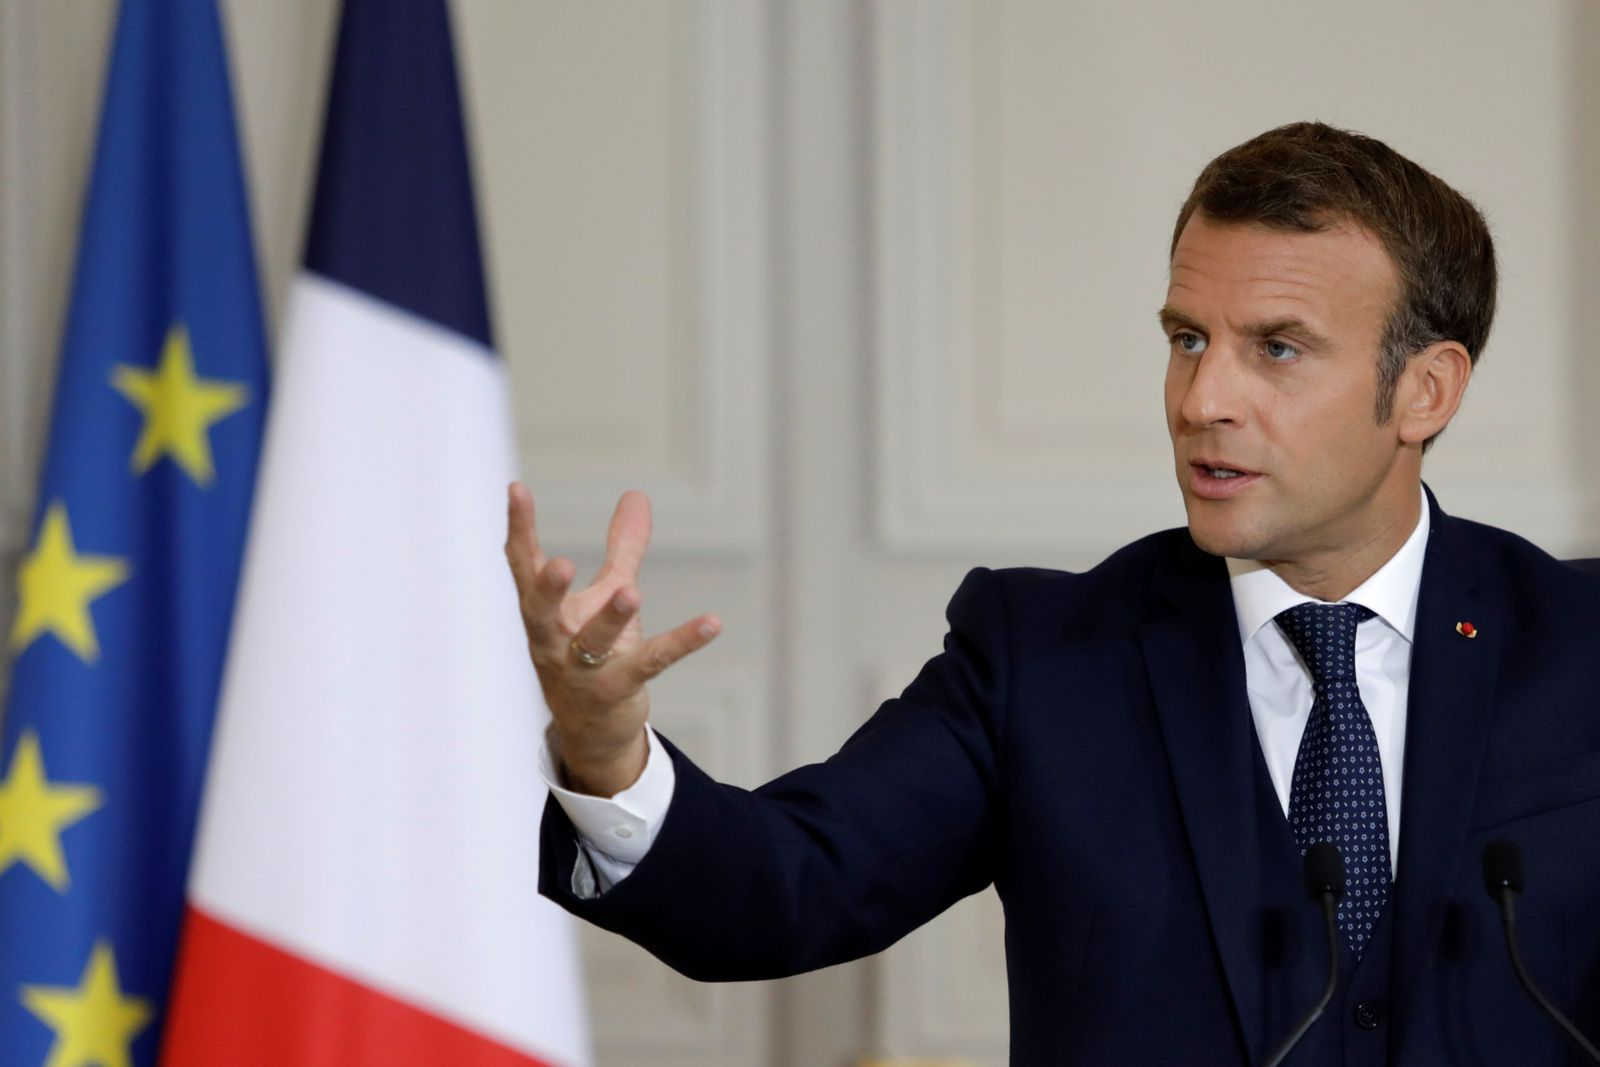 French President Emmanuel Macron holds a news conference on the political situation in Lebanon following Lebanon's Prime Minister-designate Moustapha Adib's resignation, in Paris